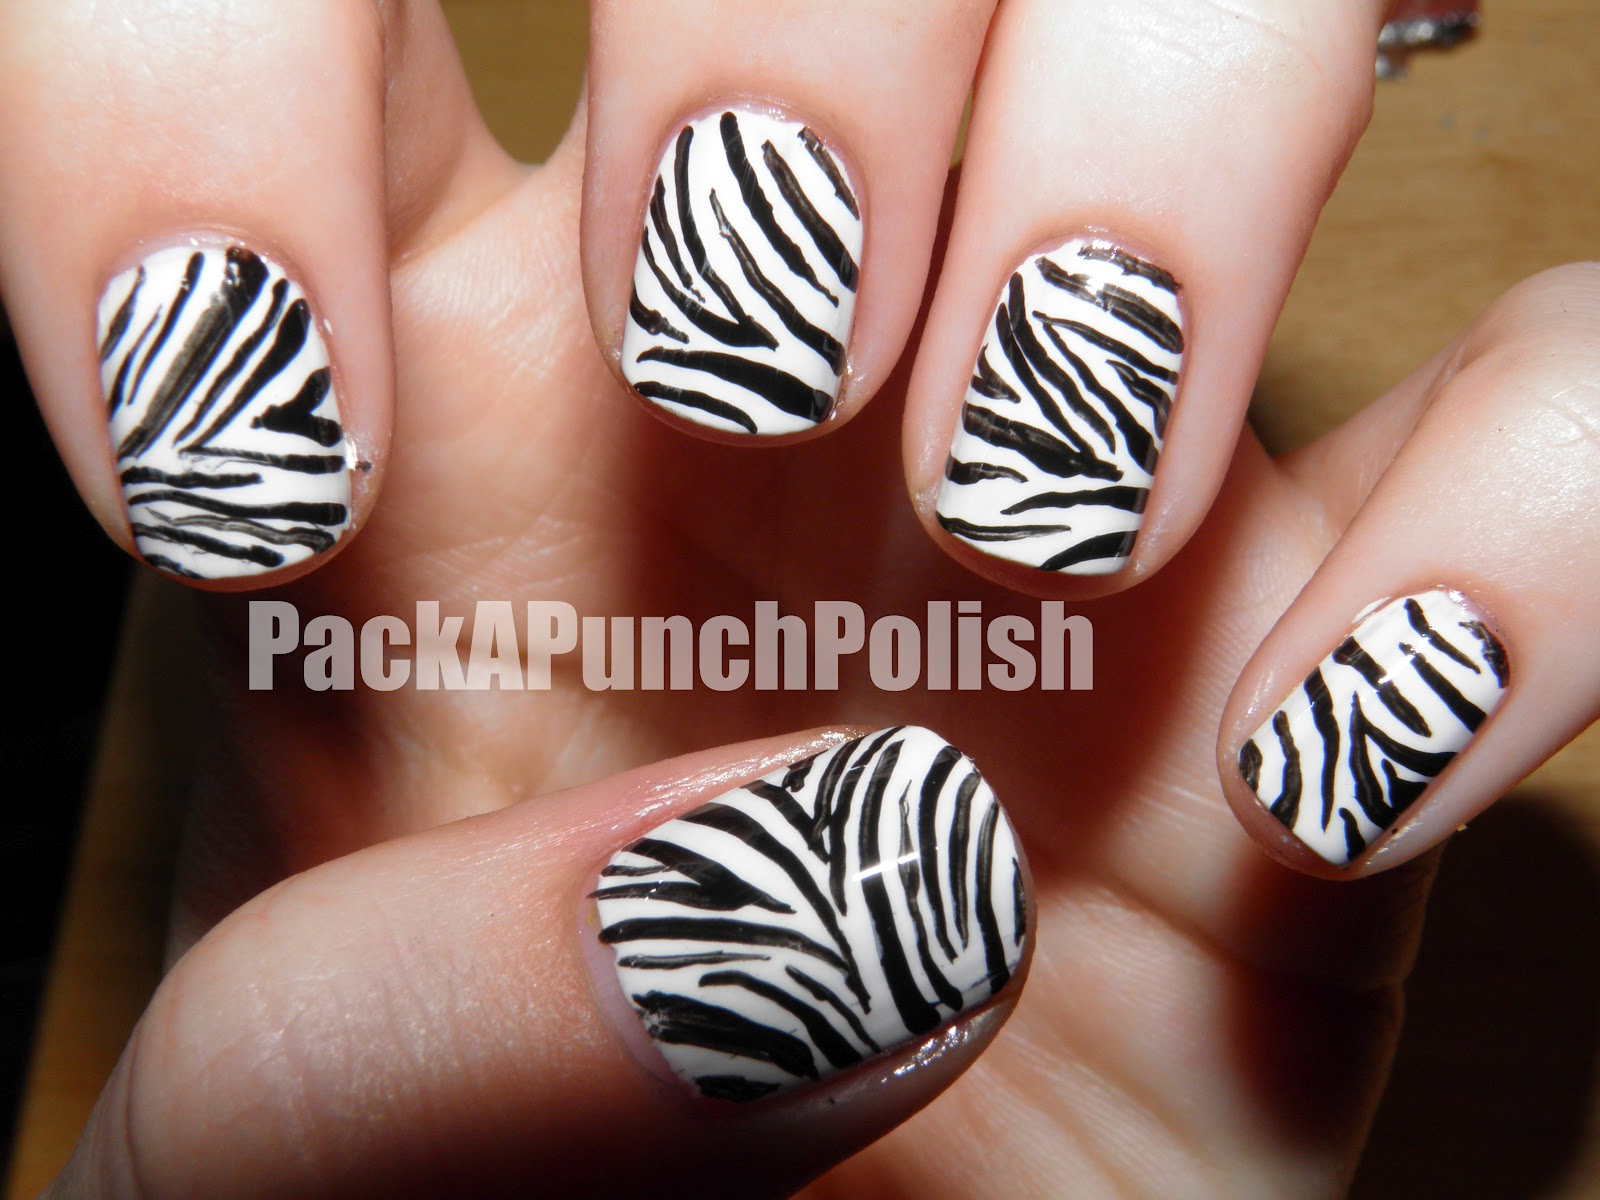 Hey everyone! I did my nails in zebra print today so I could record a ...